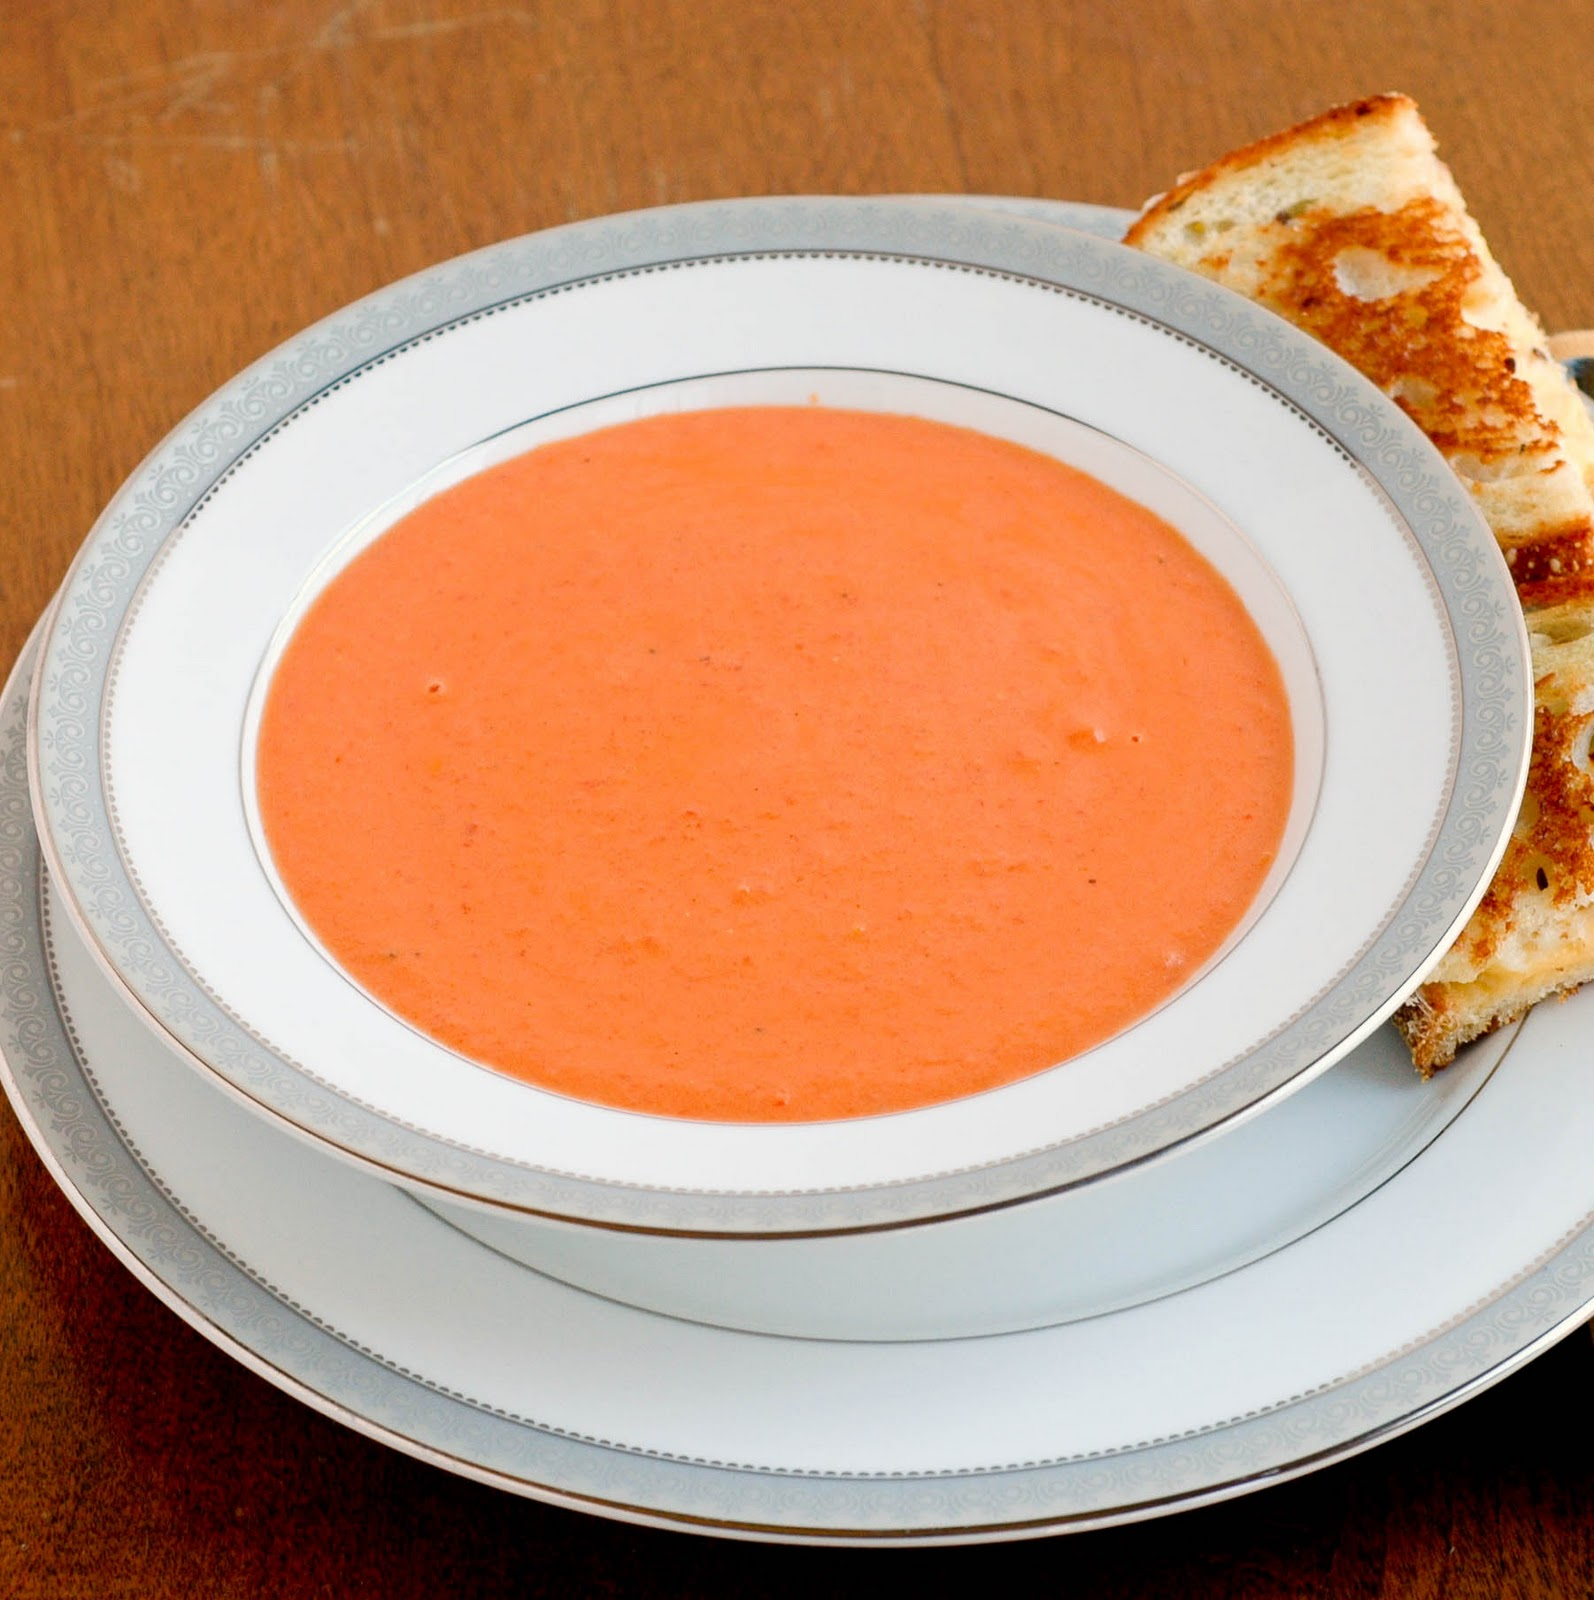 ... tomato soup with grilled cheese condenses campbell s tomato soup and